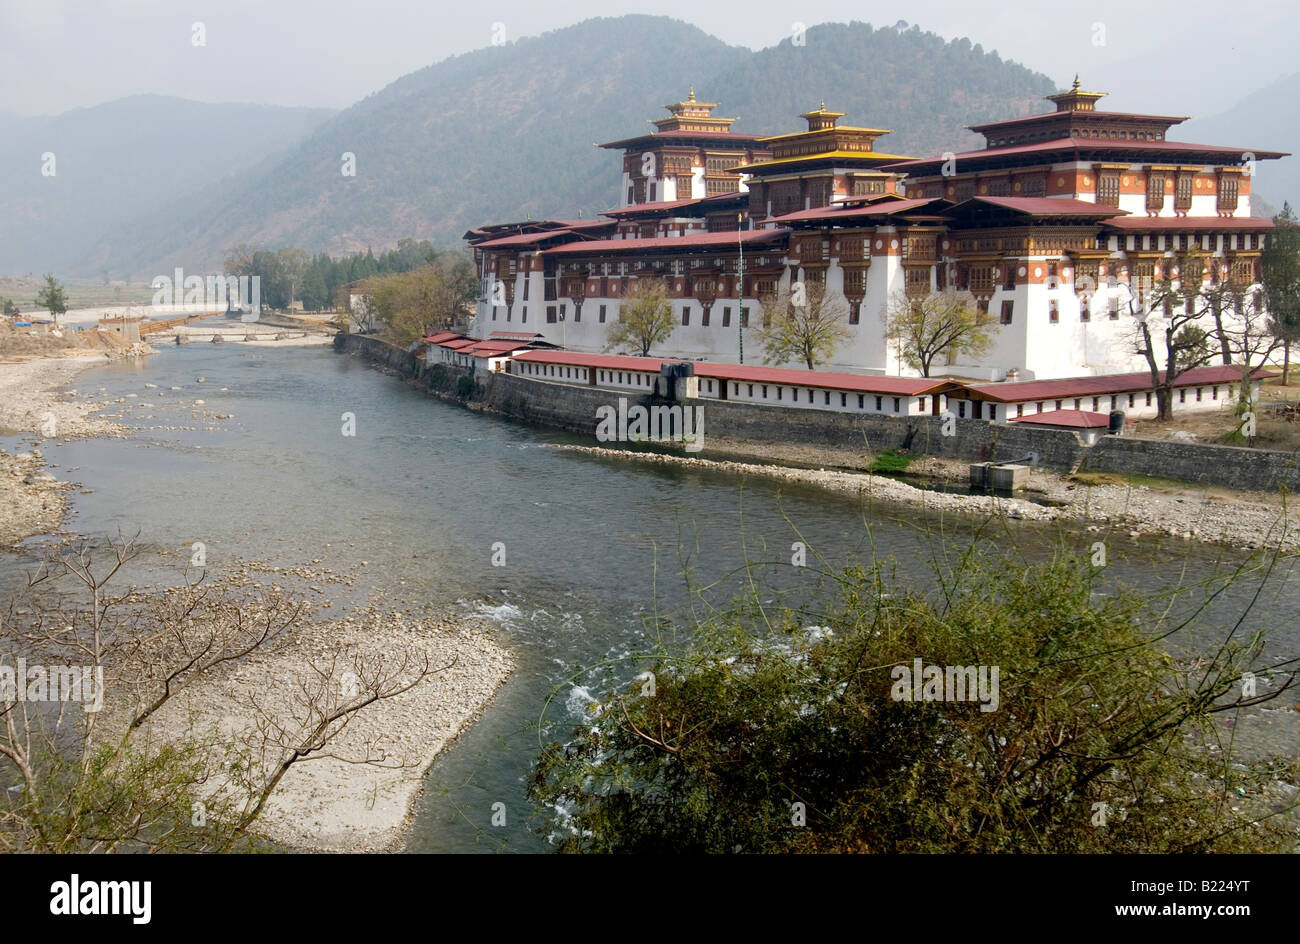 Punakha Dzong at the confluence of the Mo Chhu (Mother River) and the Pho Chhu (Father River) - Stock Image